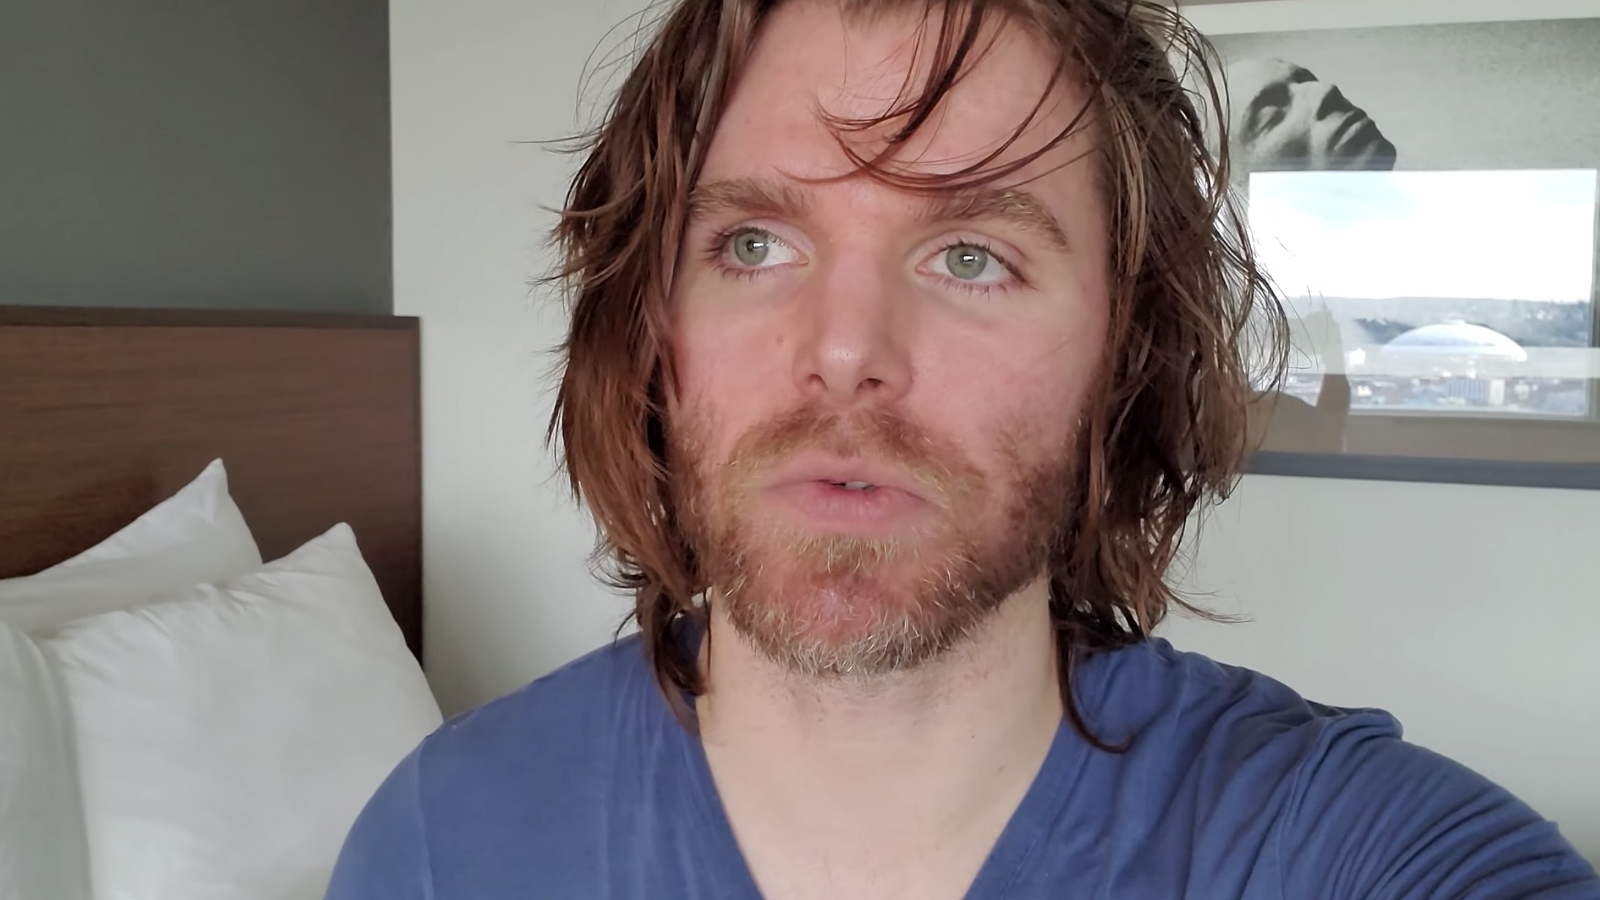 Onision talks to fans in YouTube video